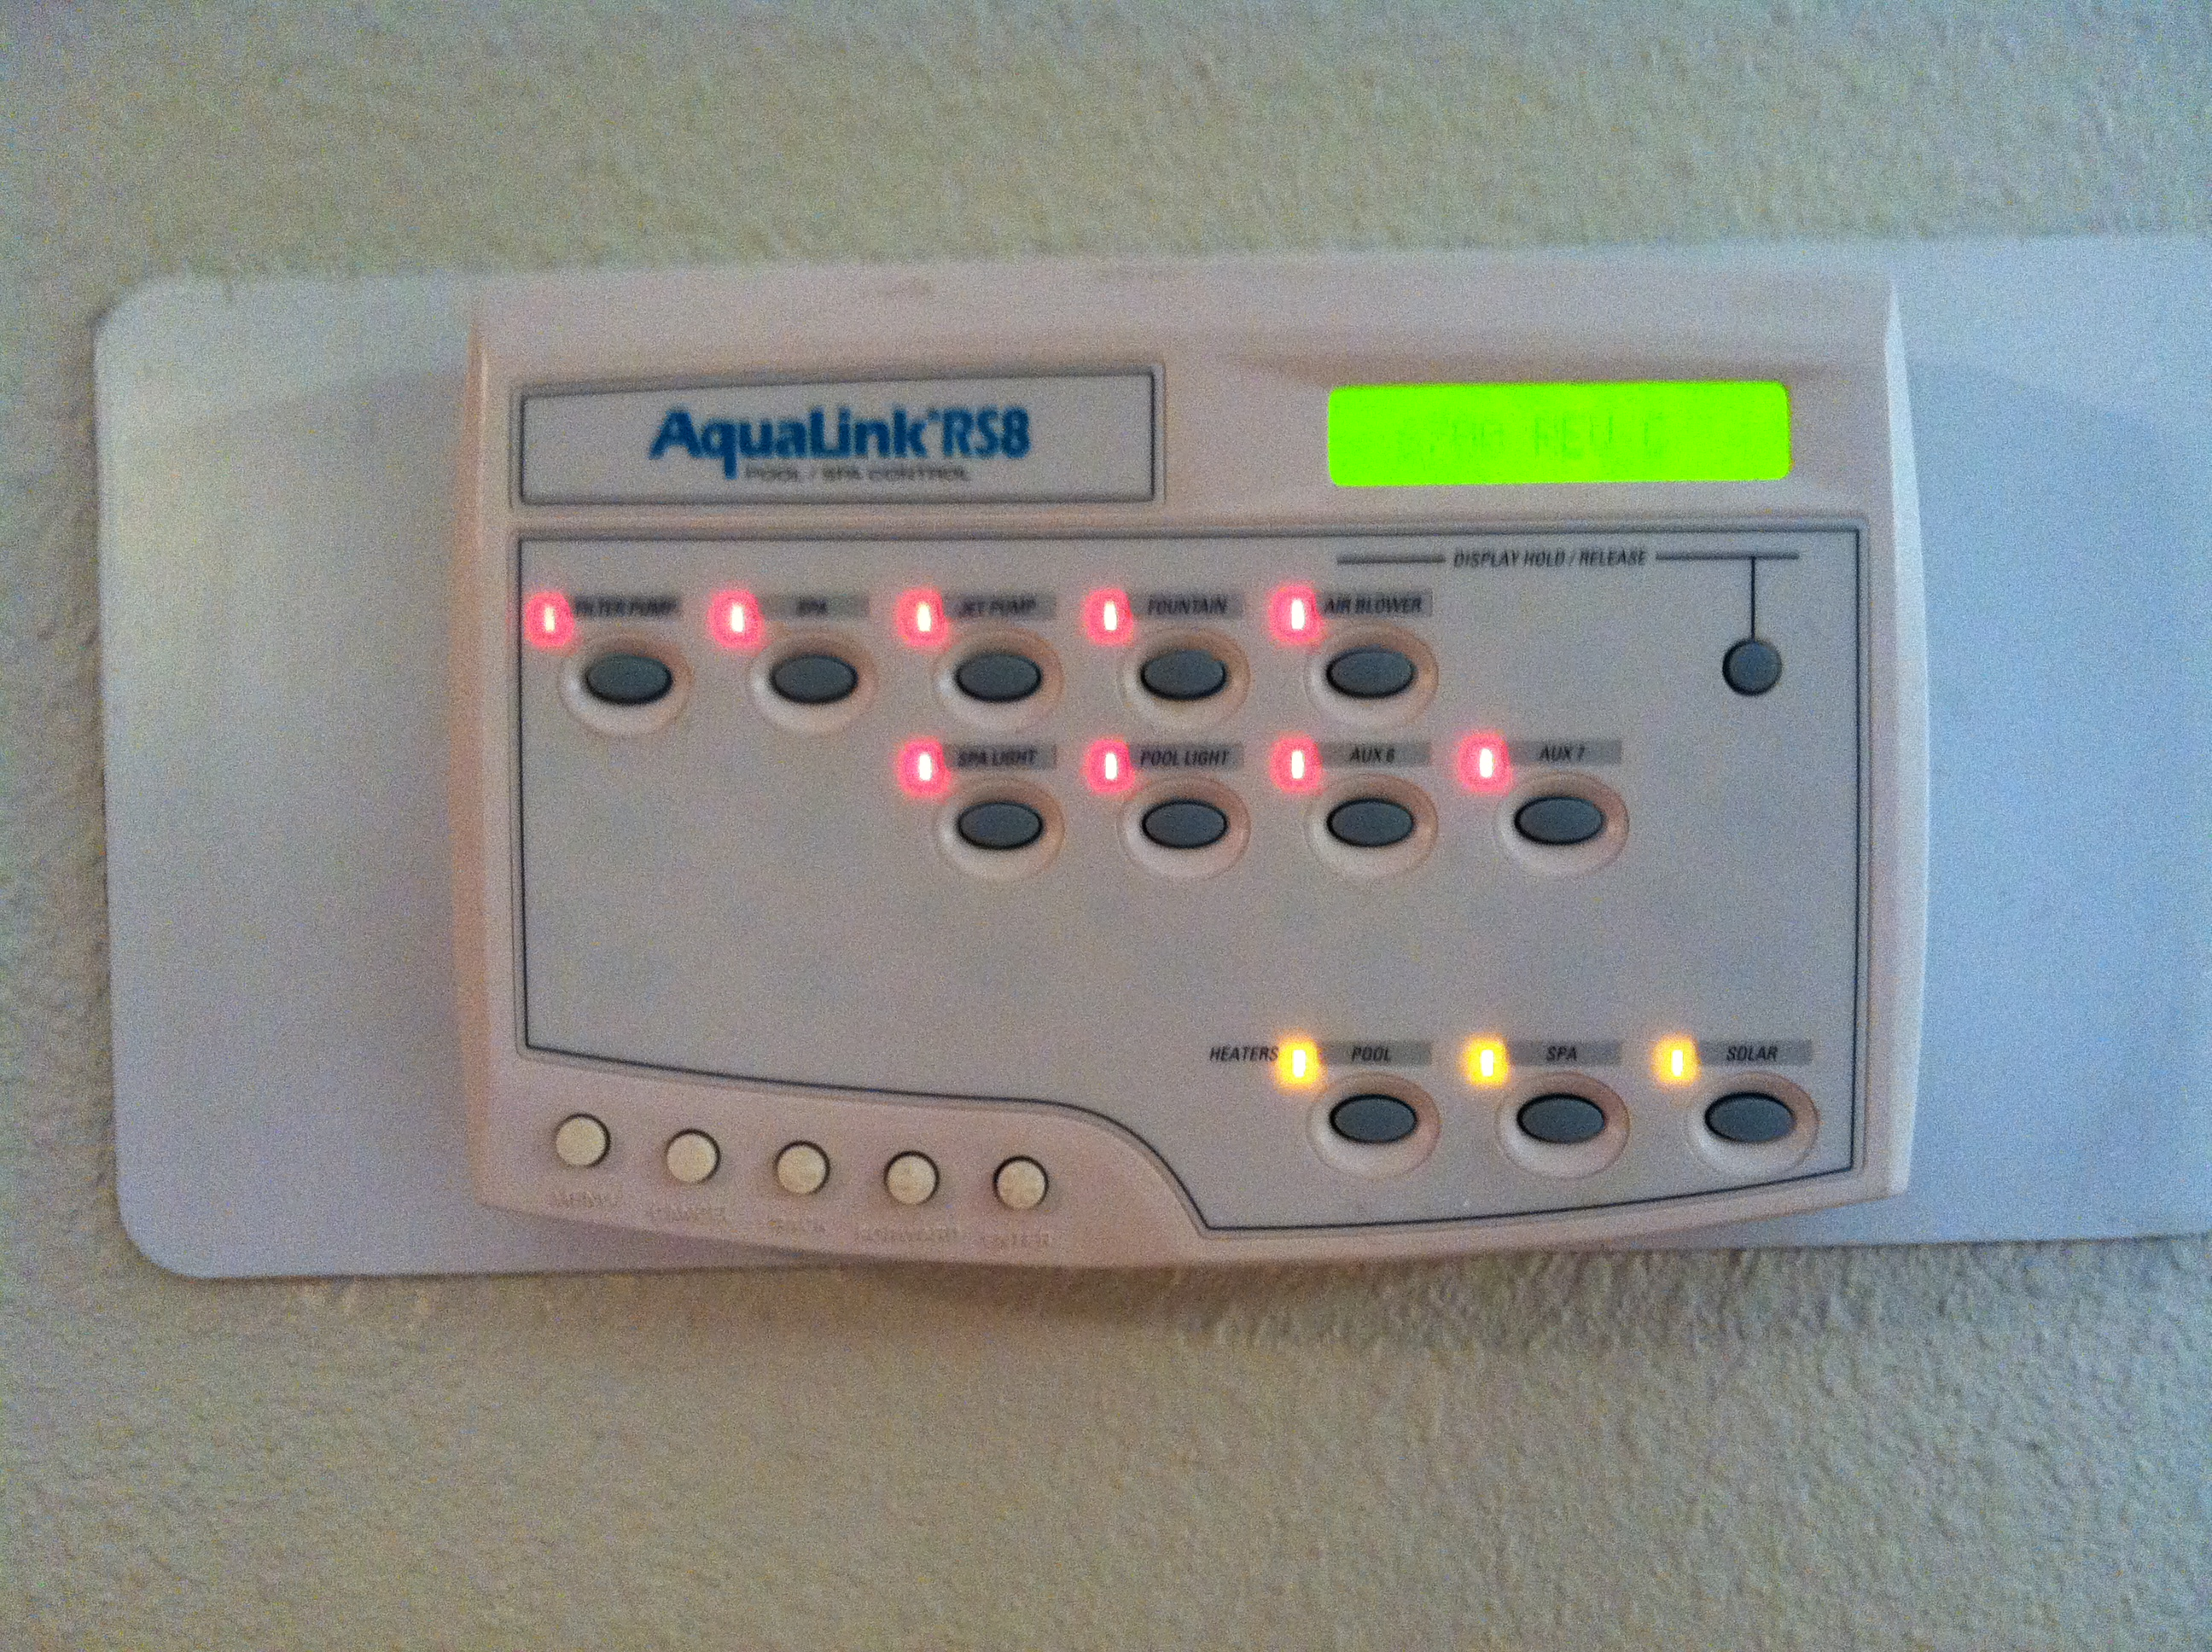 2012 04 06_160114_img_45931 aqualink rs pool control center not communicating with main box  at gsmportal.co